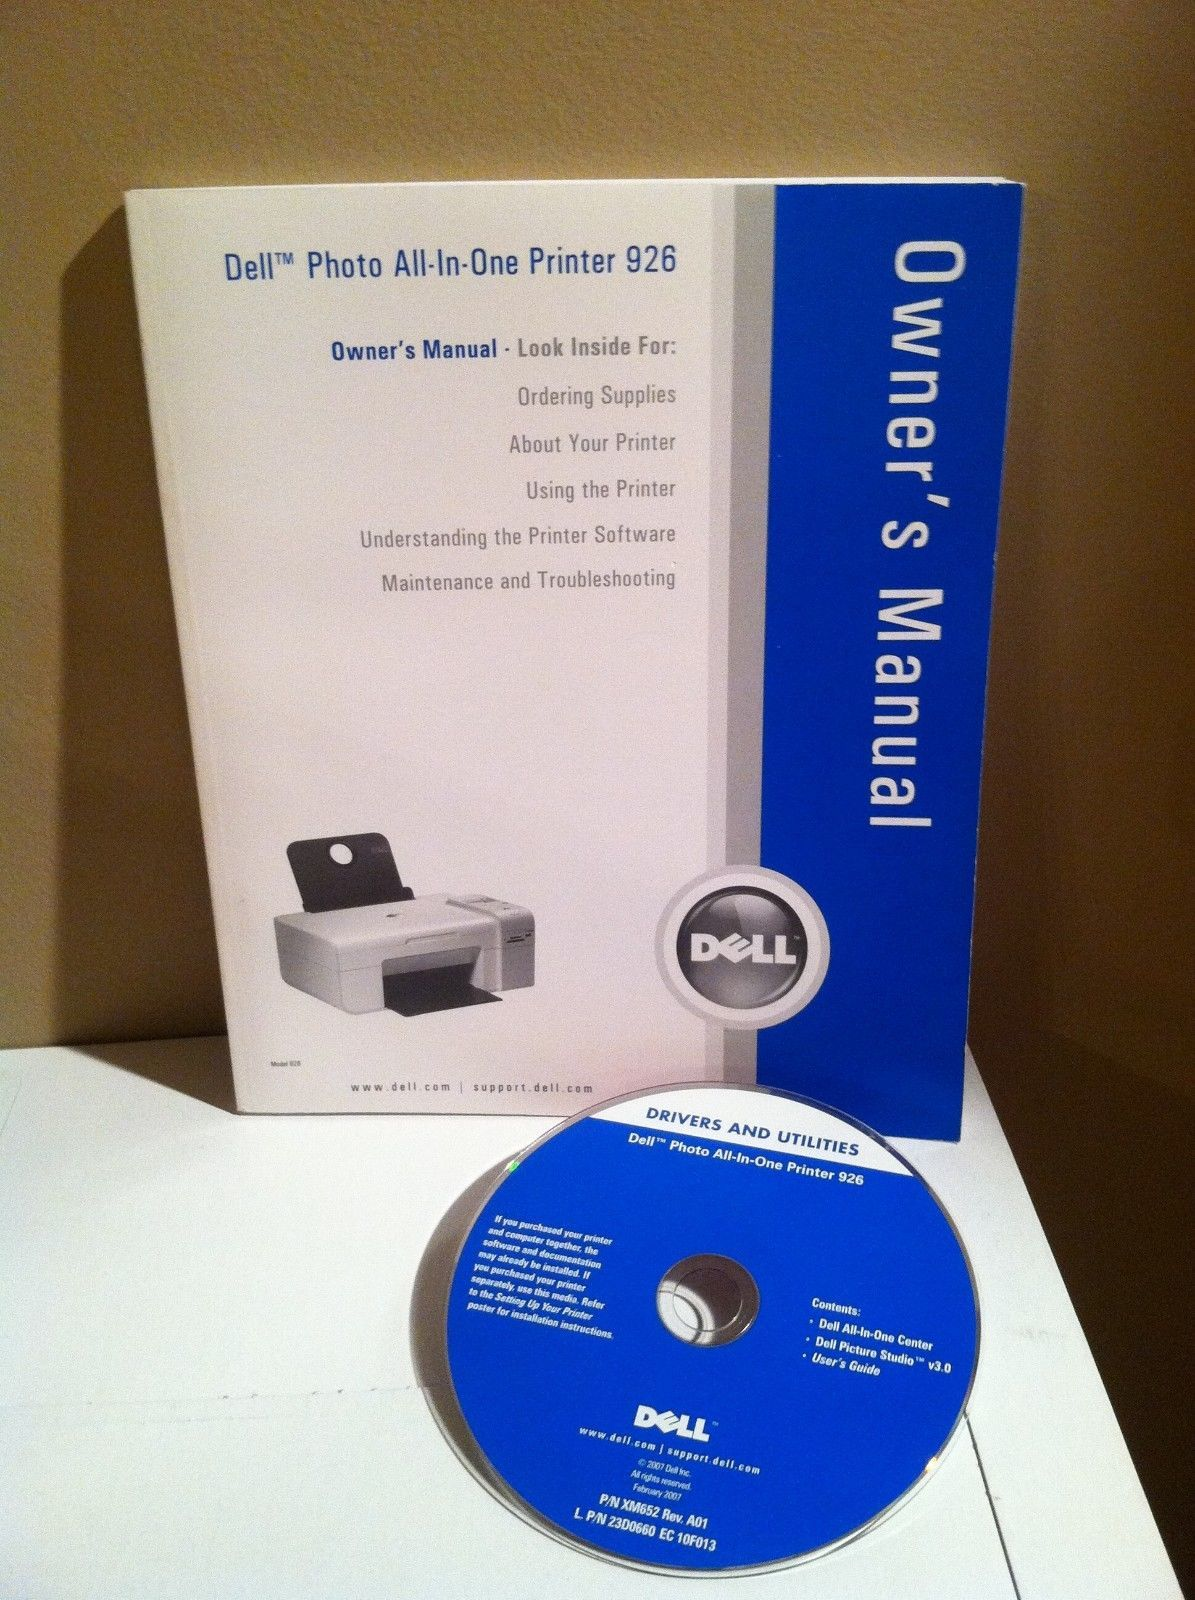 Dell Photo All-In-One Printer 926 Owner's Manual & Printer Driver Disc